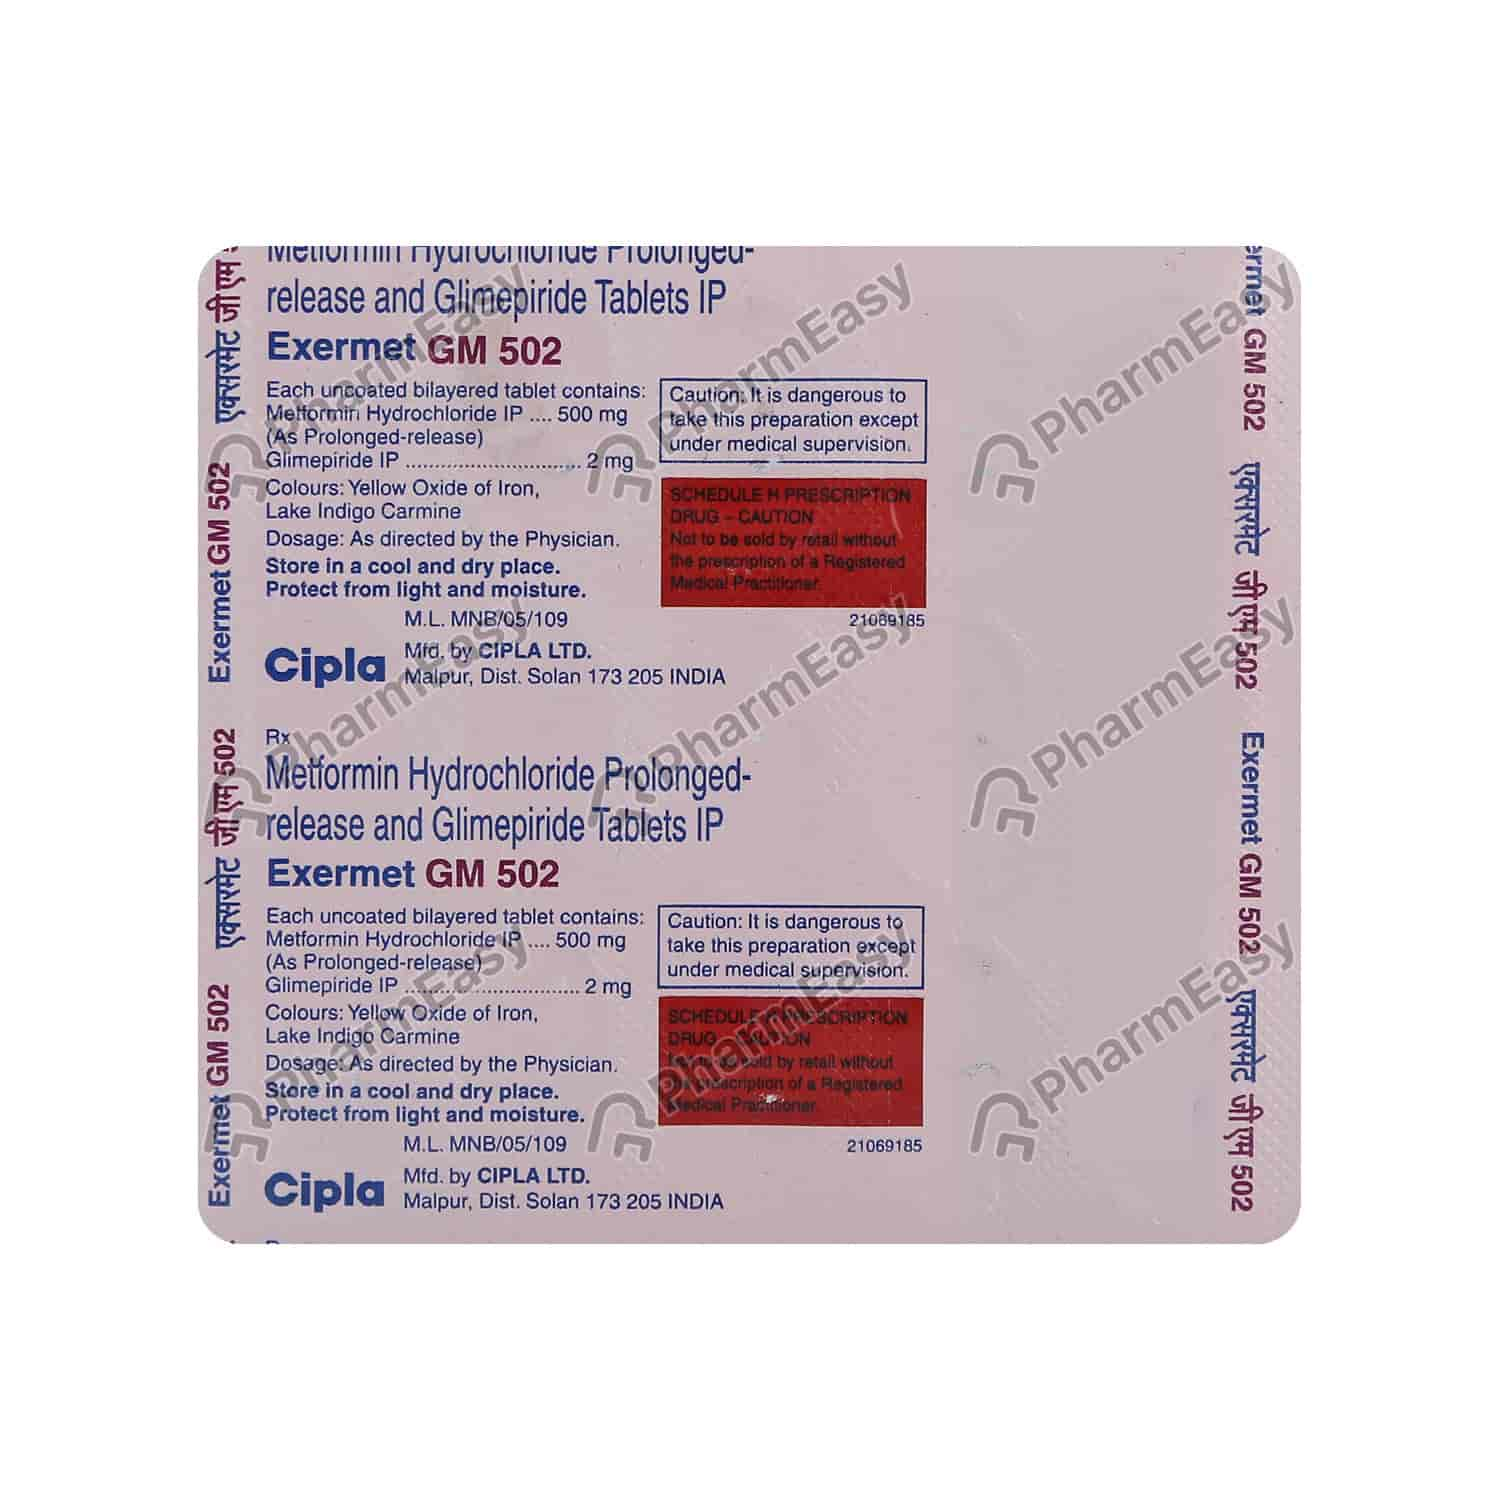 Exermet Gm 502mg Strip Of 15 Tablets